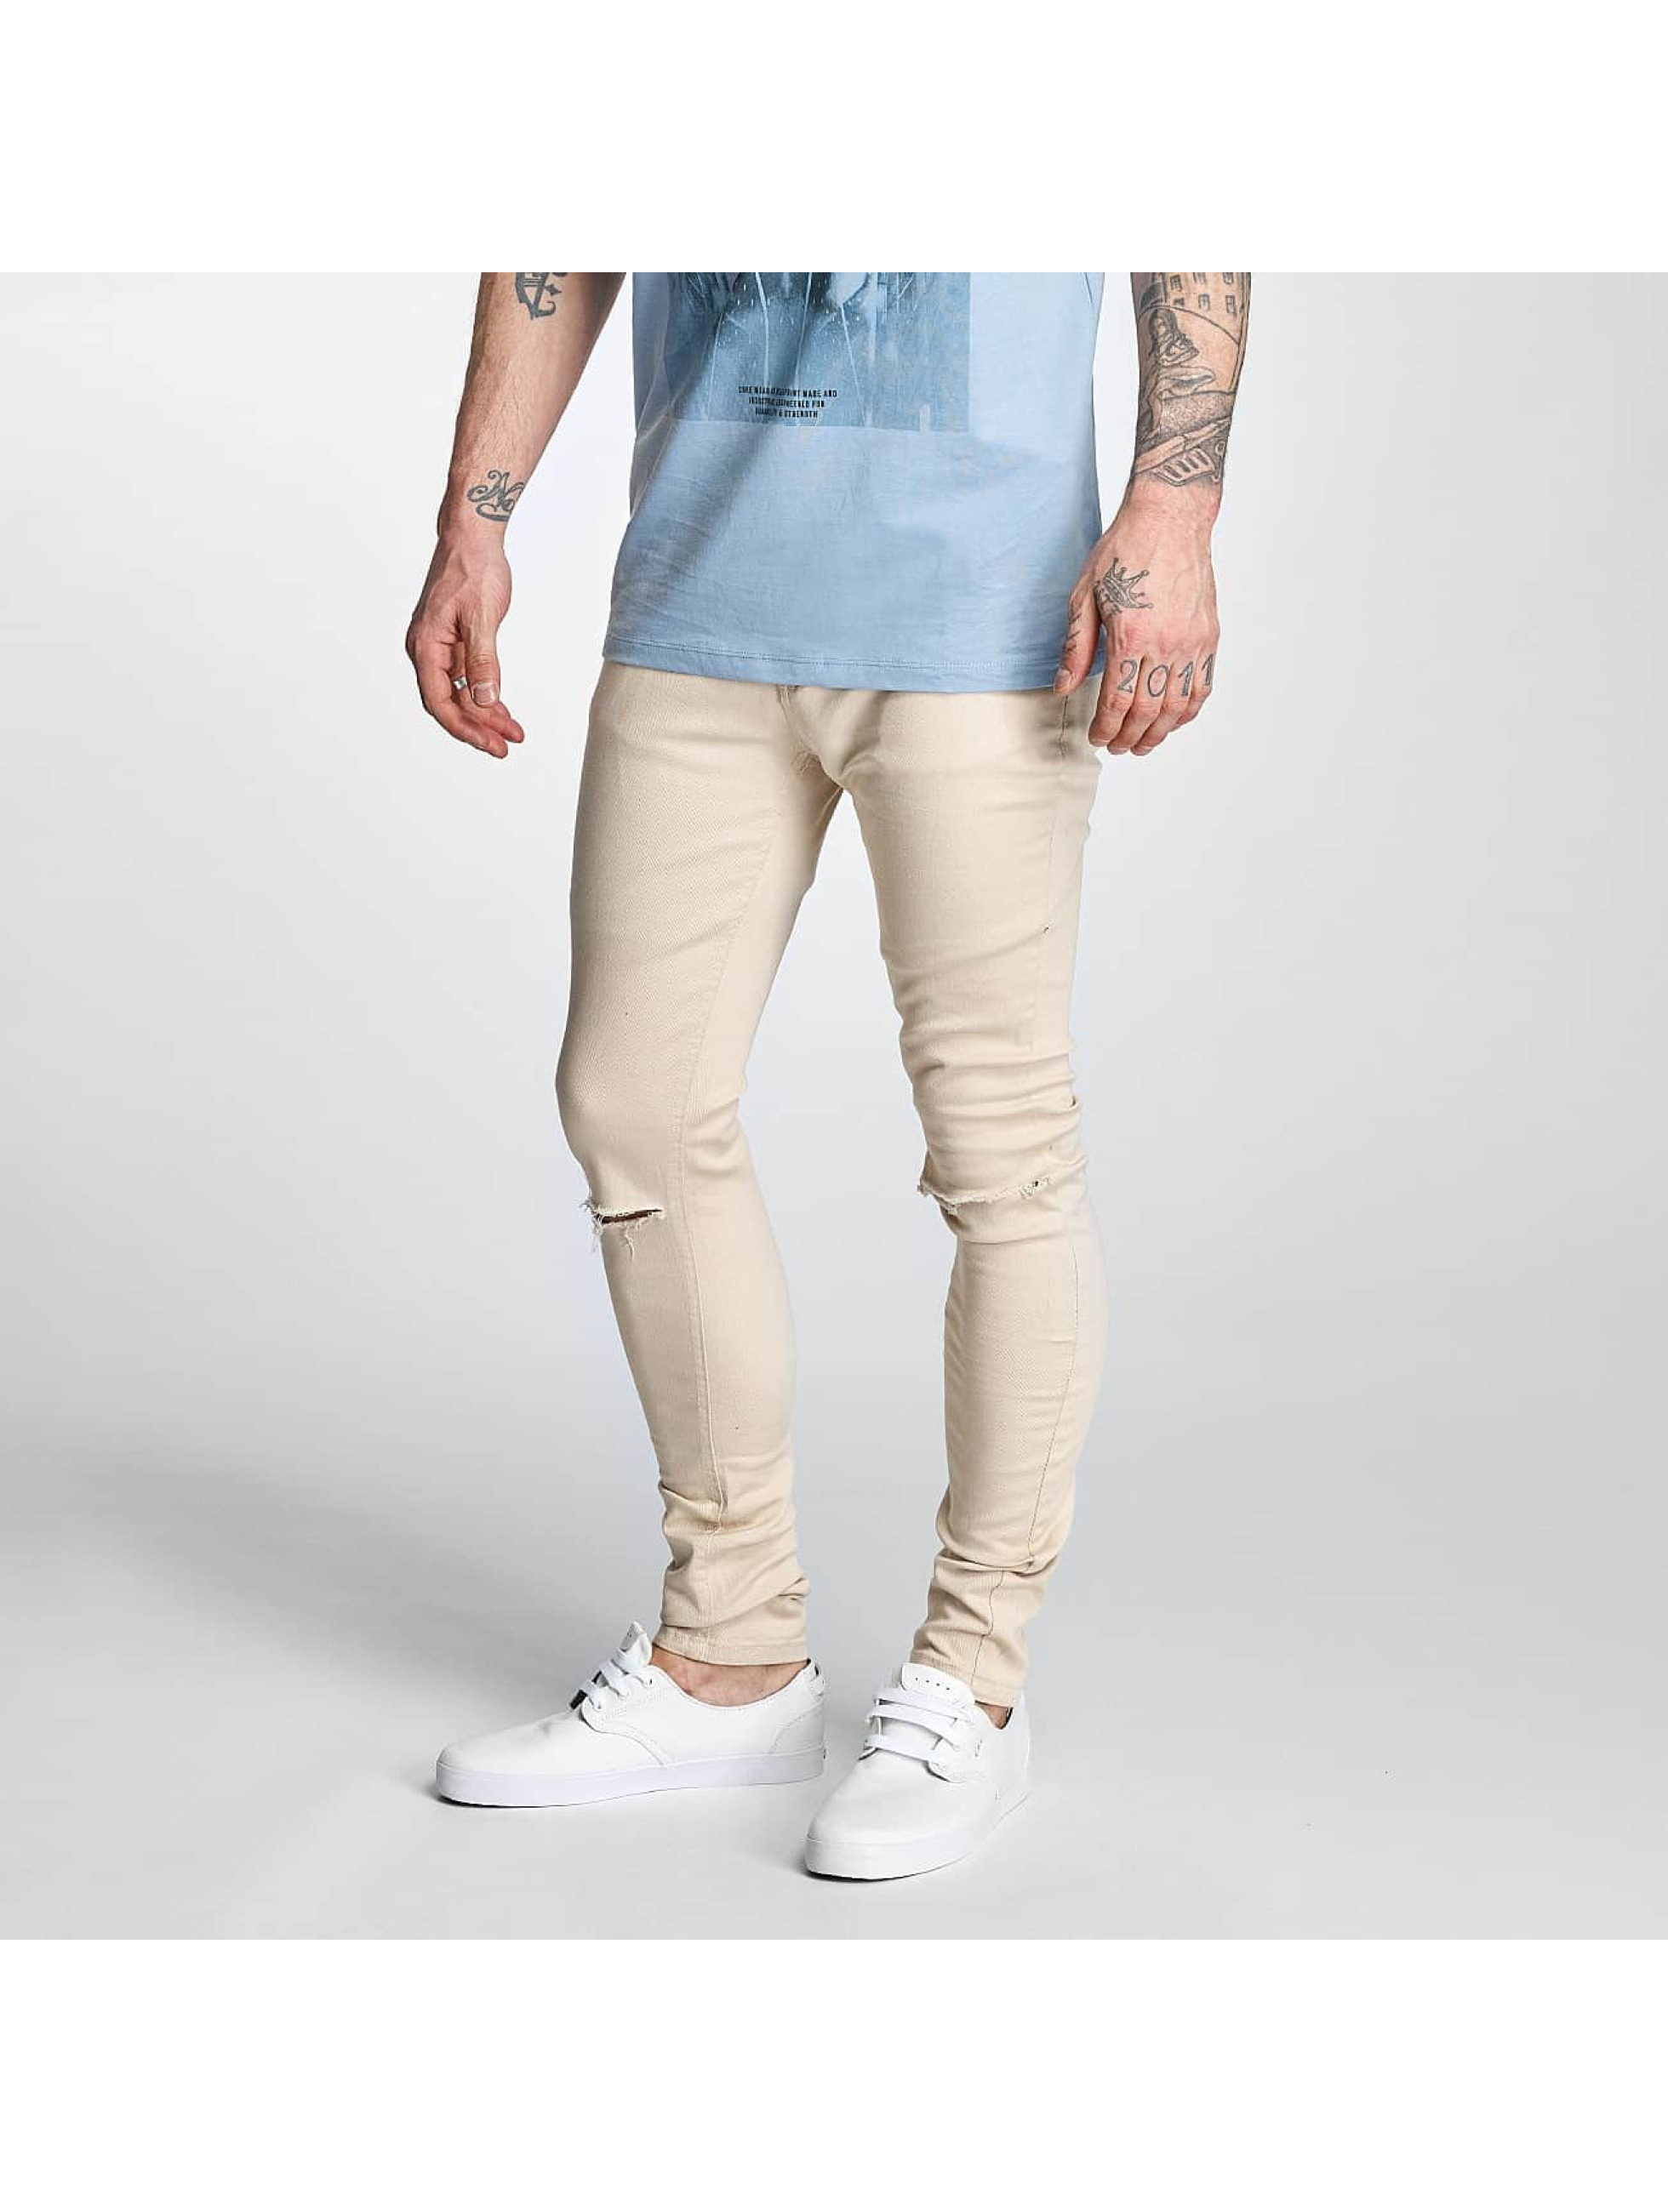 Criminal Damage Skinny Jeans Ripper bezowy